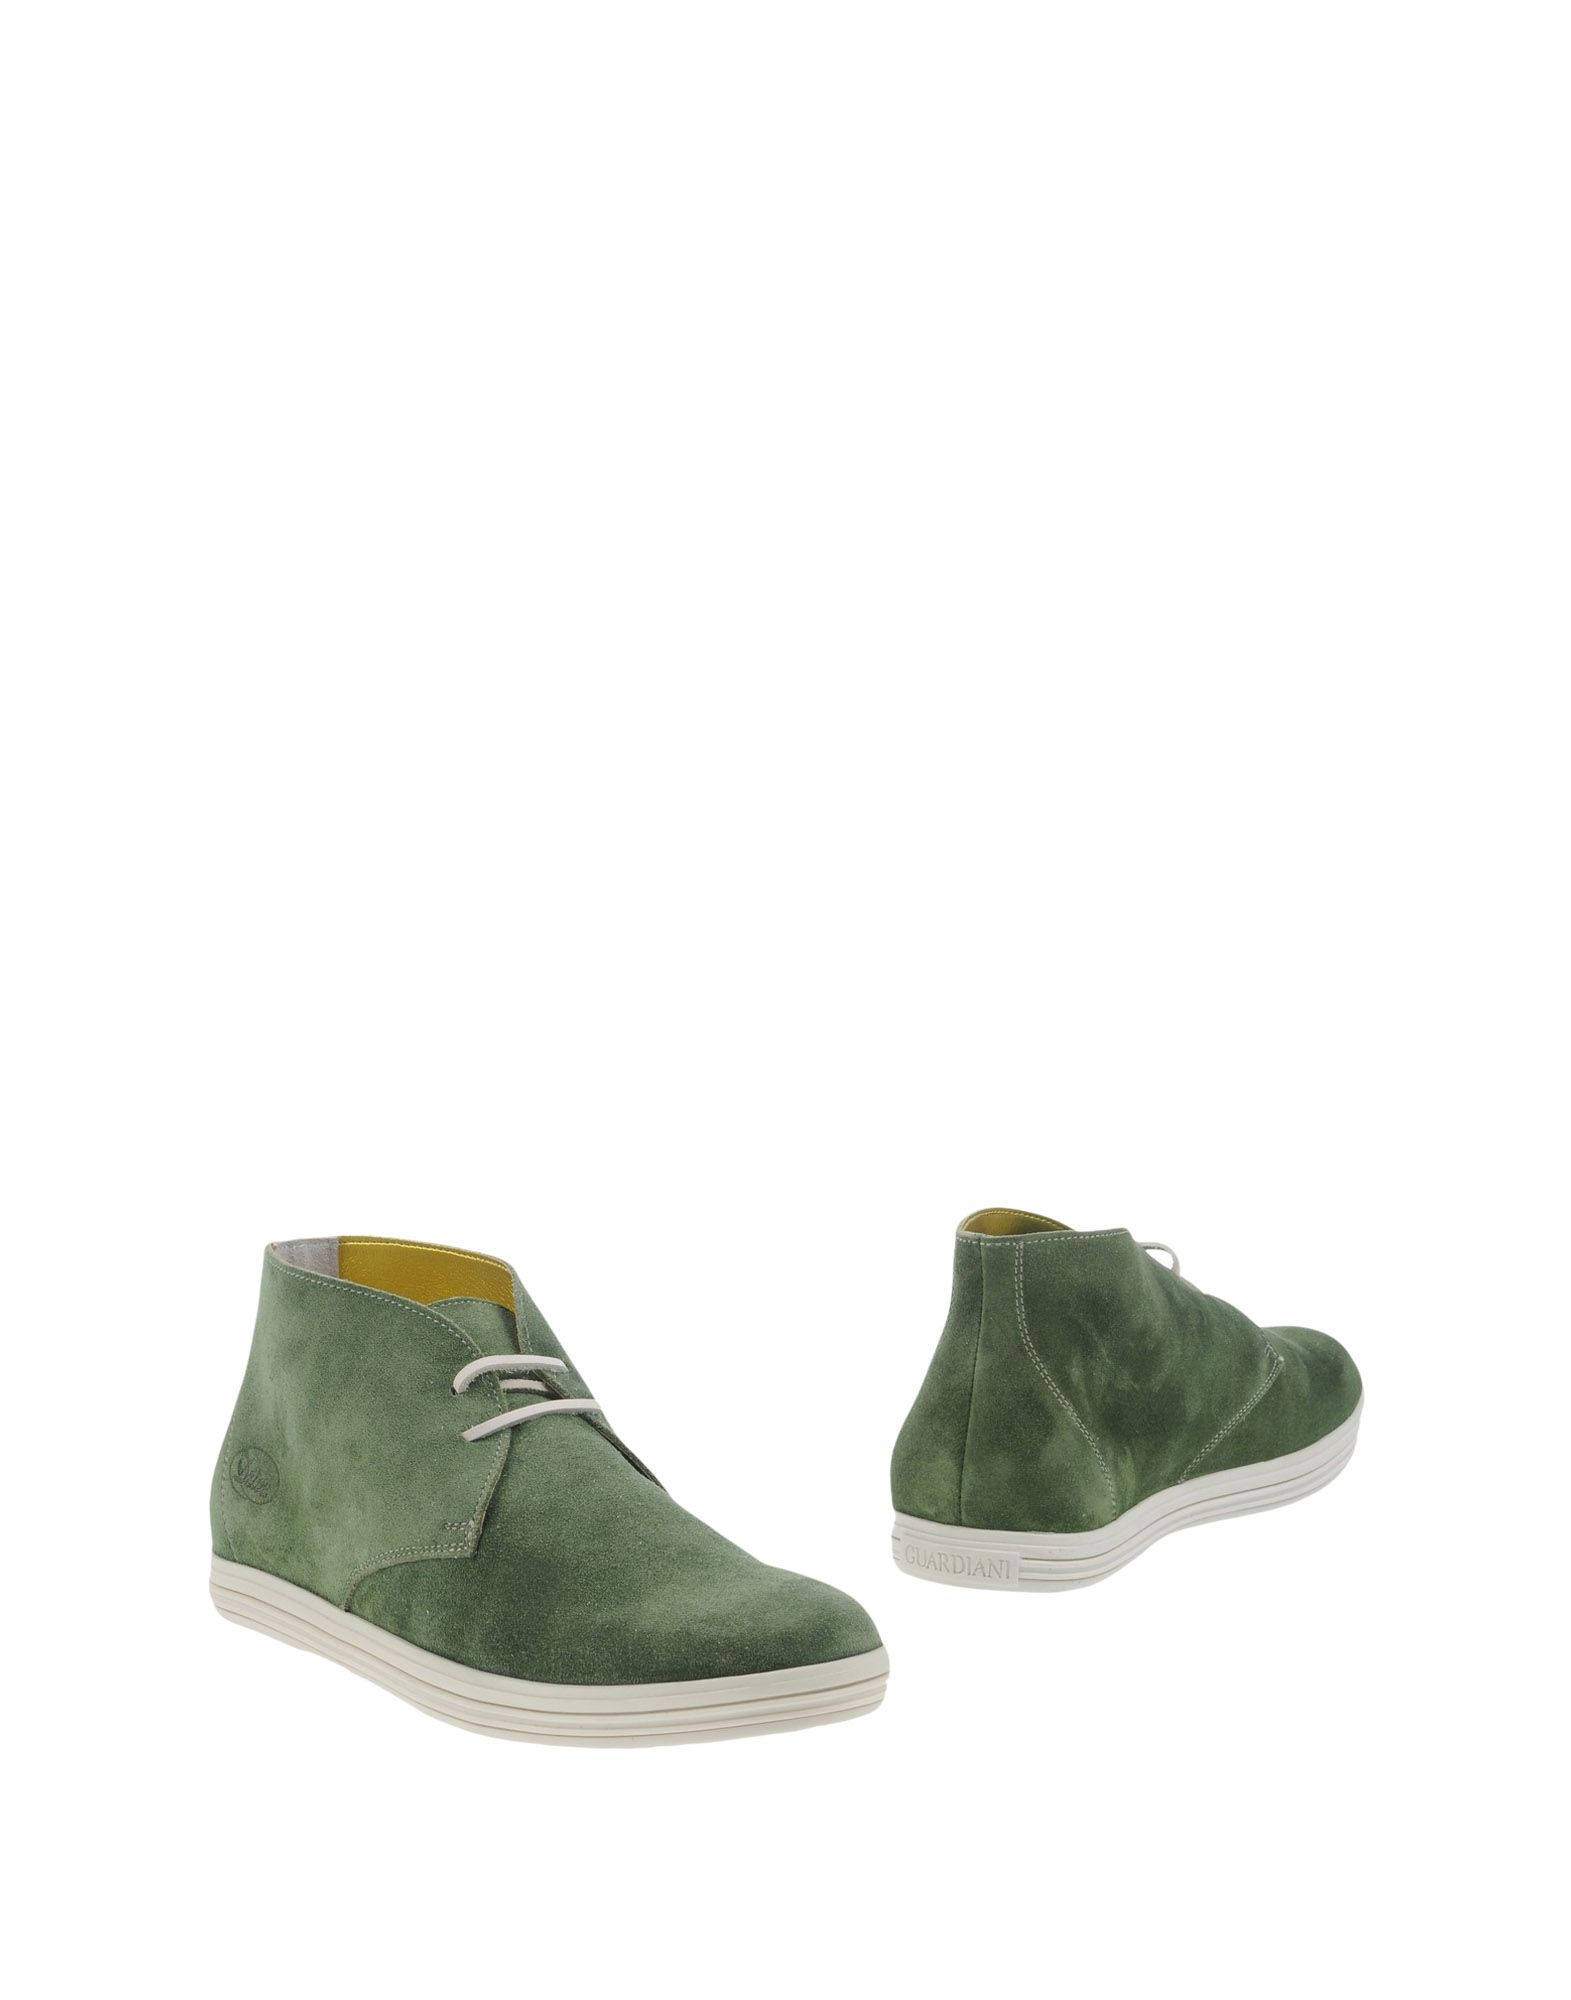 'Guardiani Drive Ankle Boots